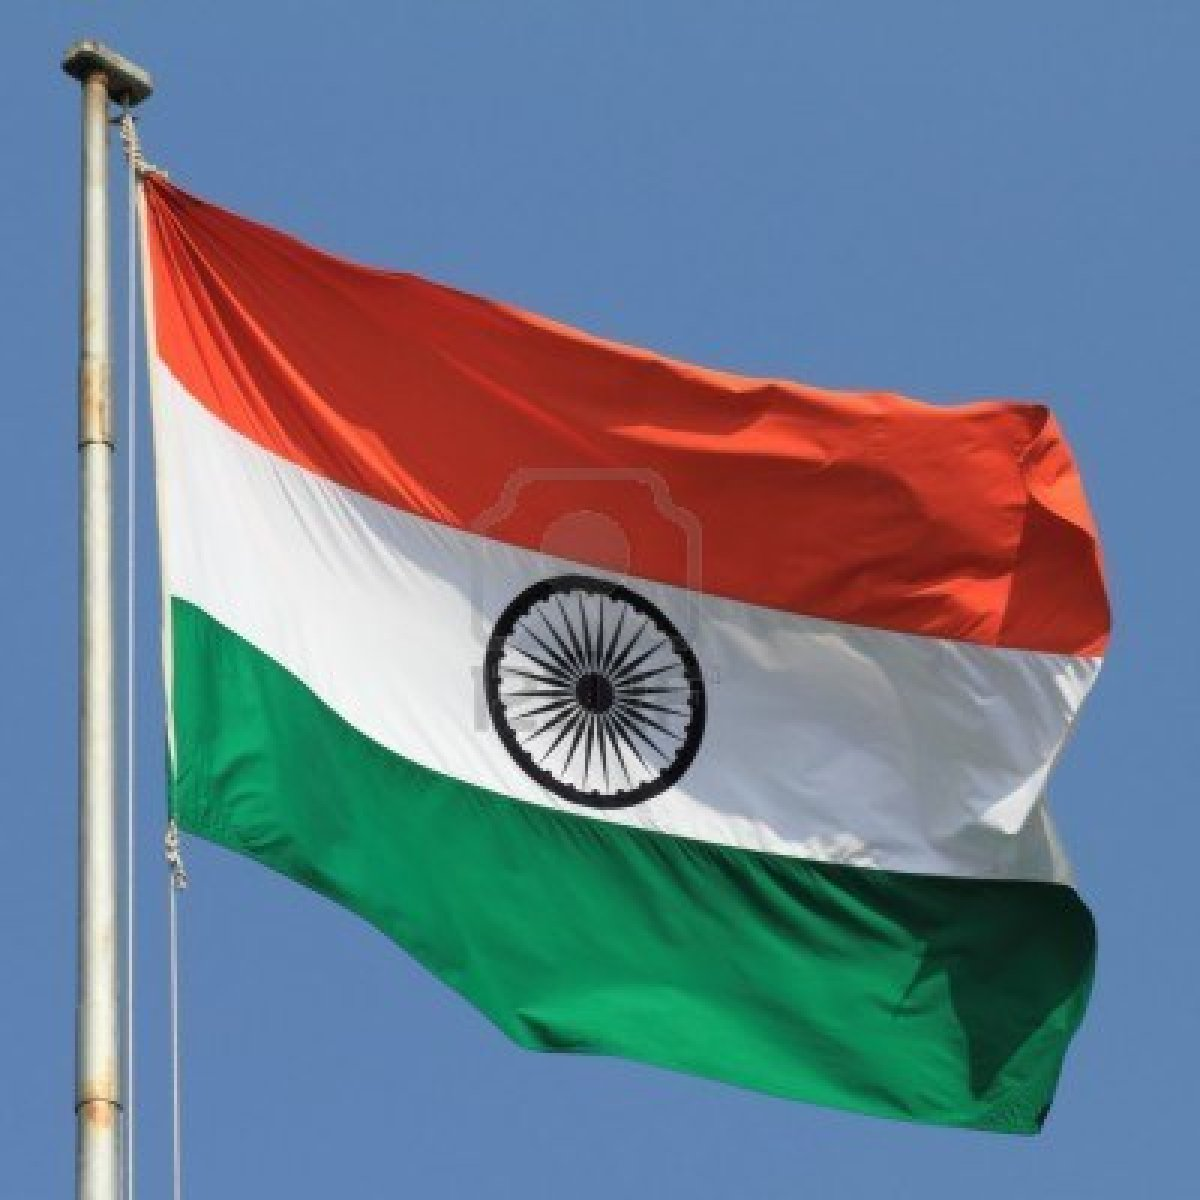 hd wallpaper graphic: indian flag high resolution wallpapers